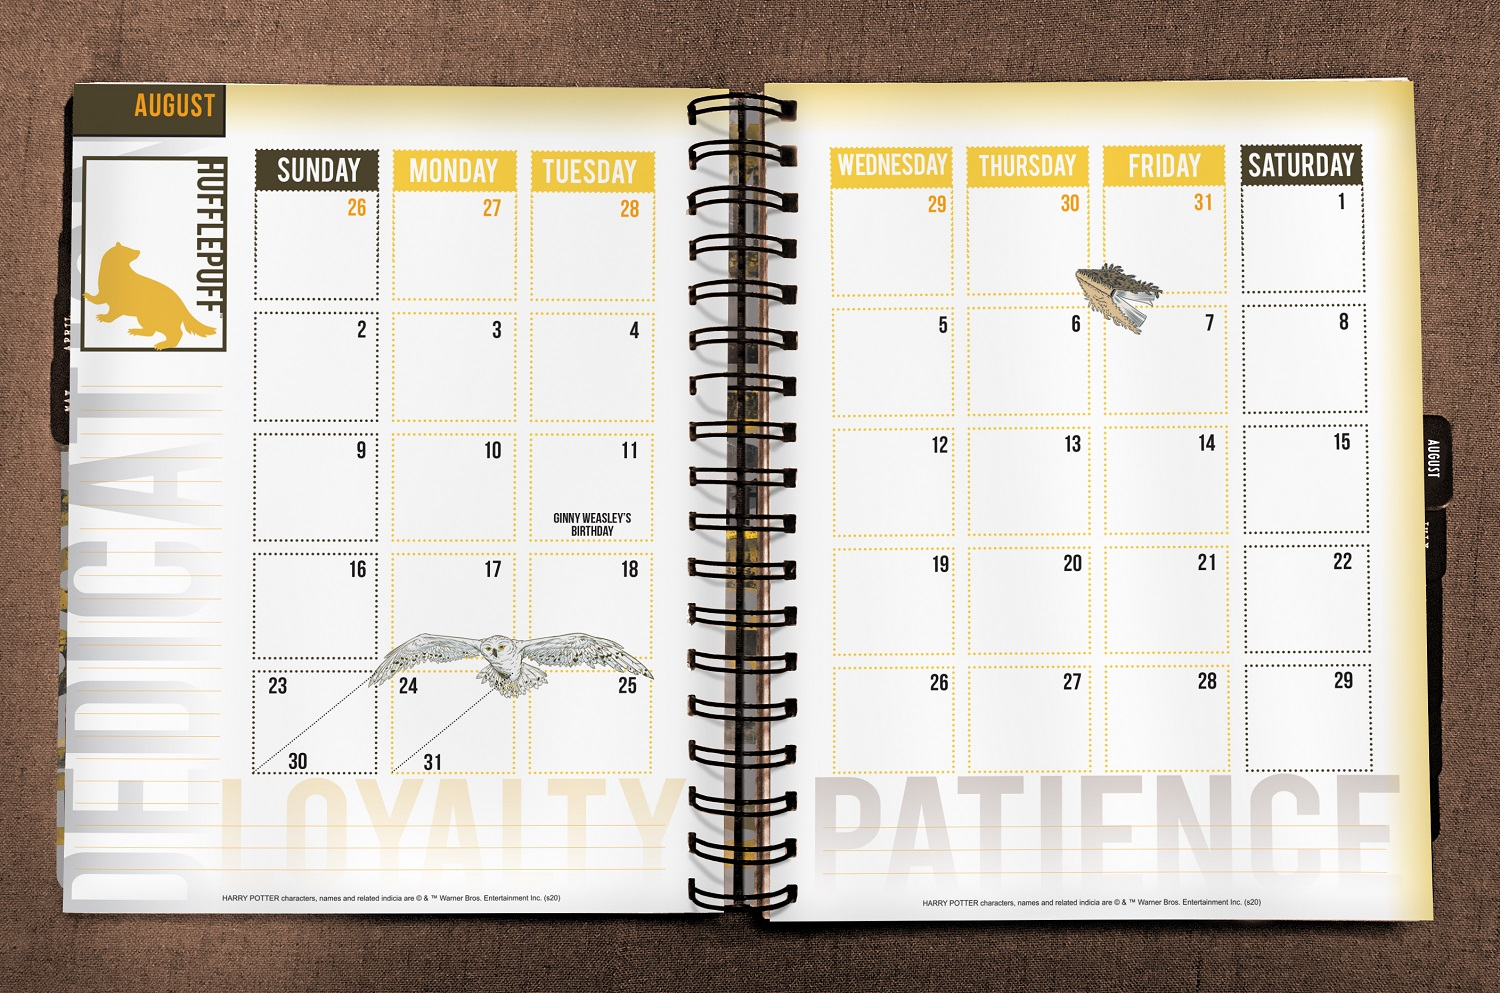 ConQuest Harry Potter Hufflepuff 2020 inside monthly spread